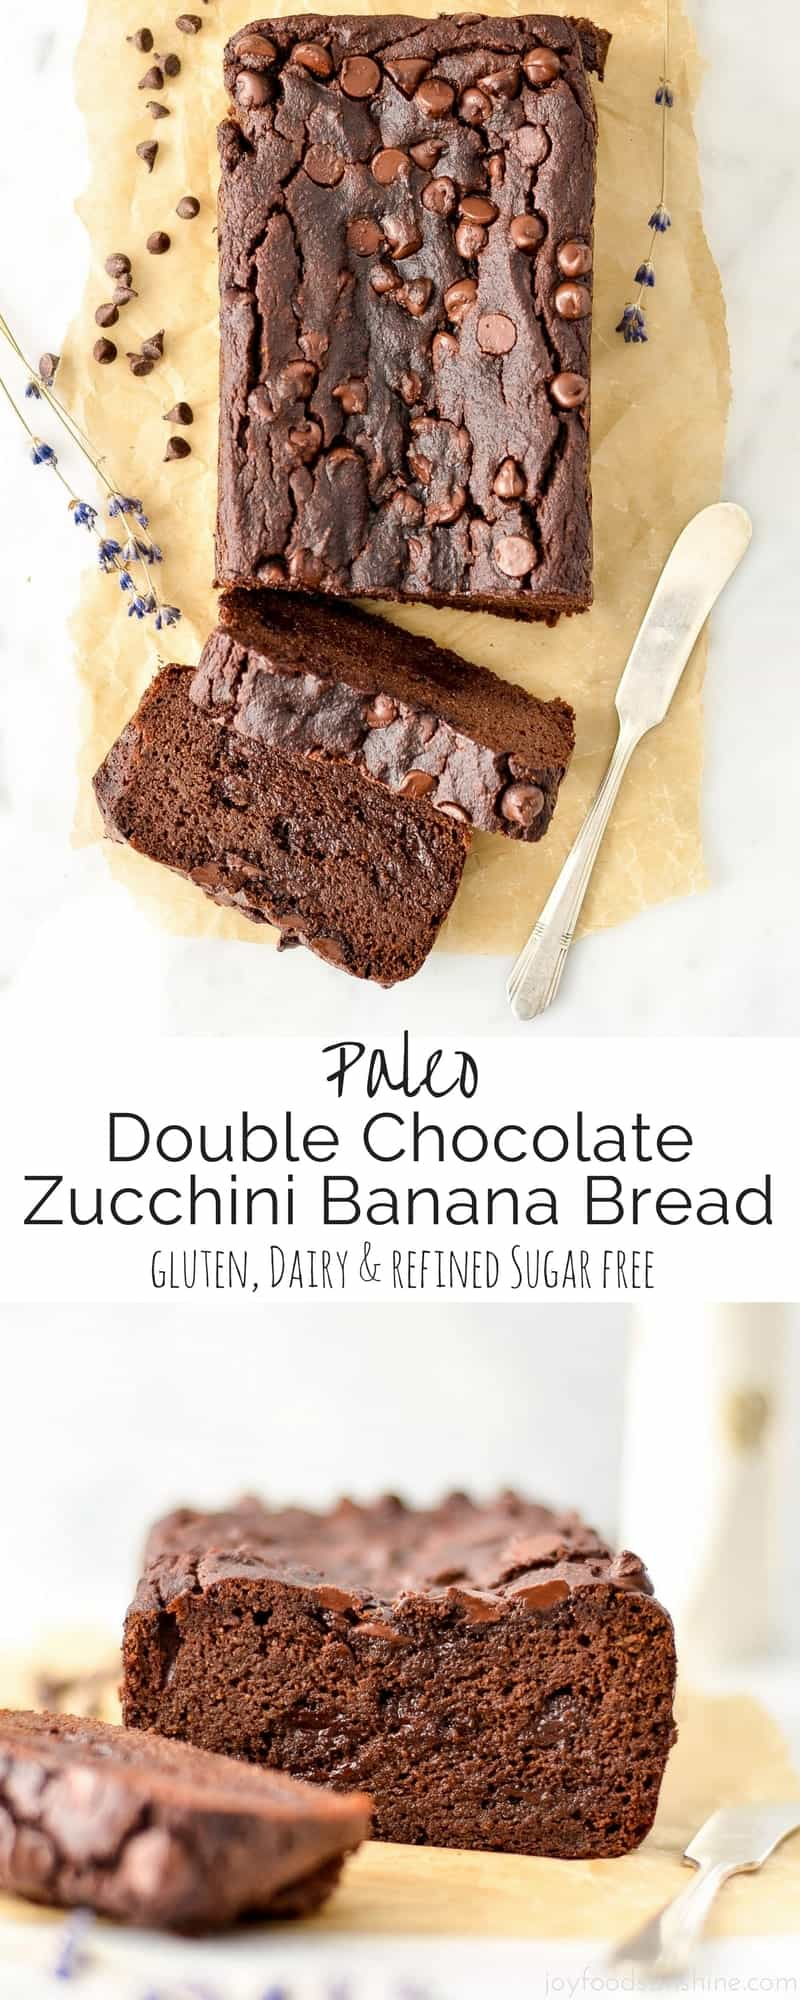 This Paleo Double Chocolate Zucchini Banana Bread Recipe is an easy, healthy & delicious way to eat your fruits and vegetables! Using a blender to whip up the batter makes the zucchini completely undetectable! Gluten-free, dairy-free and refined sugar free!